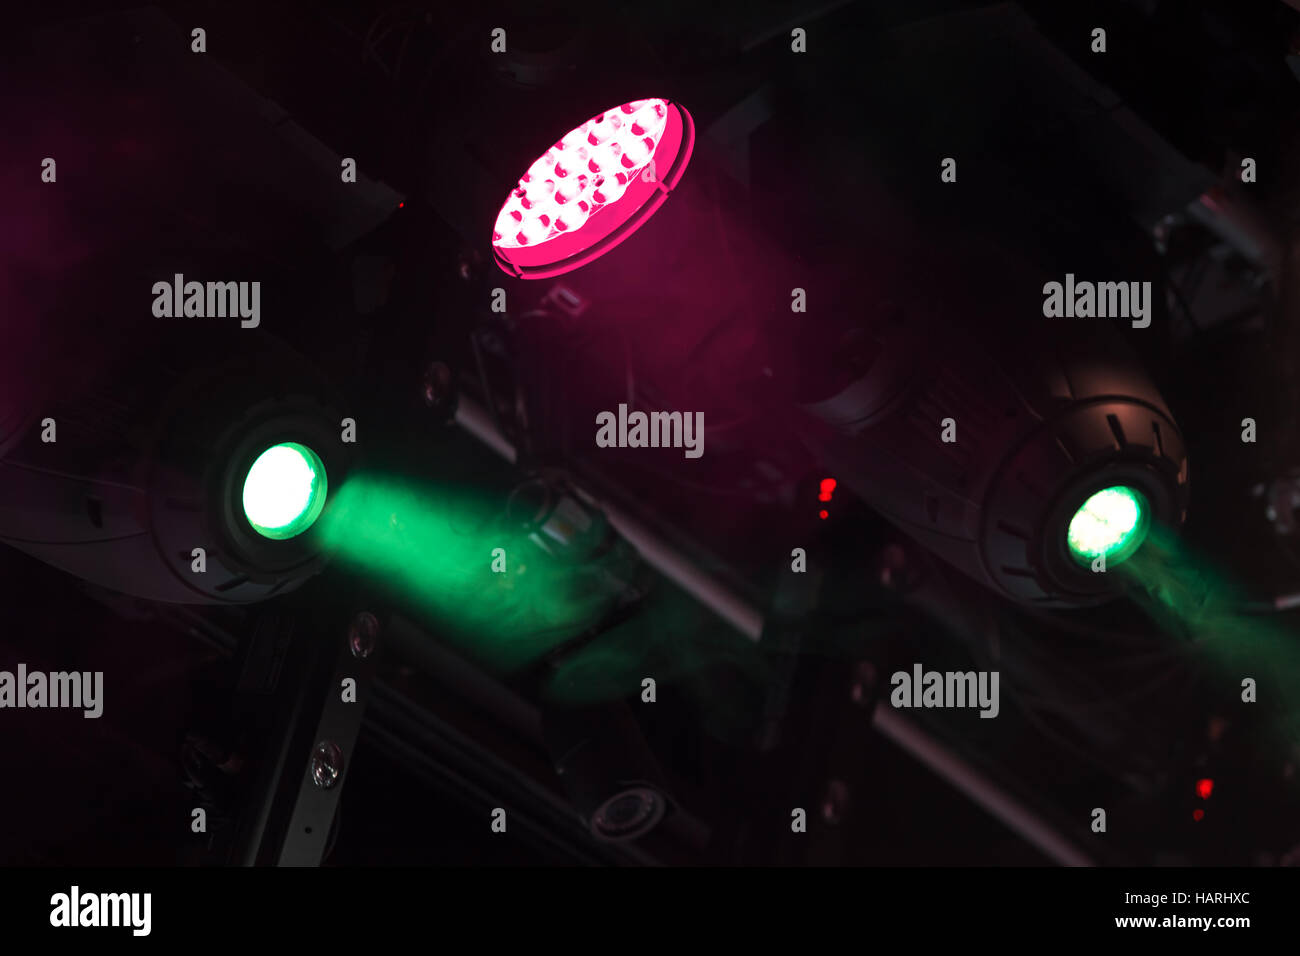 Colorful spot lights mounted above the stage - Stock Image